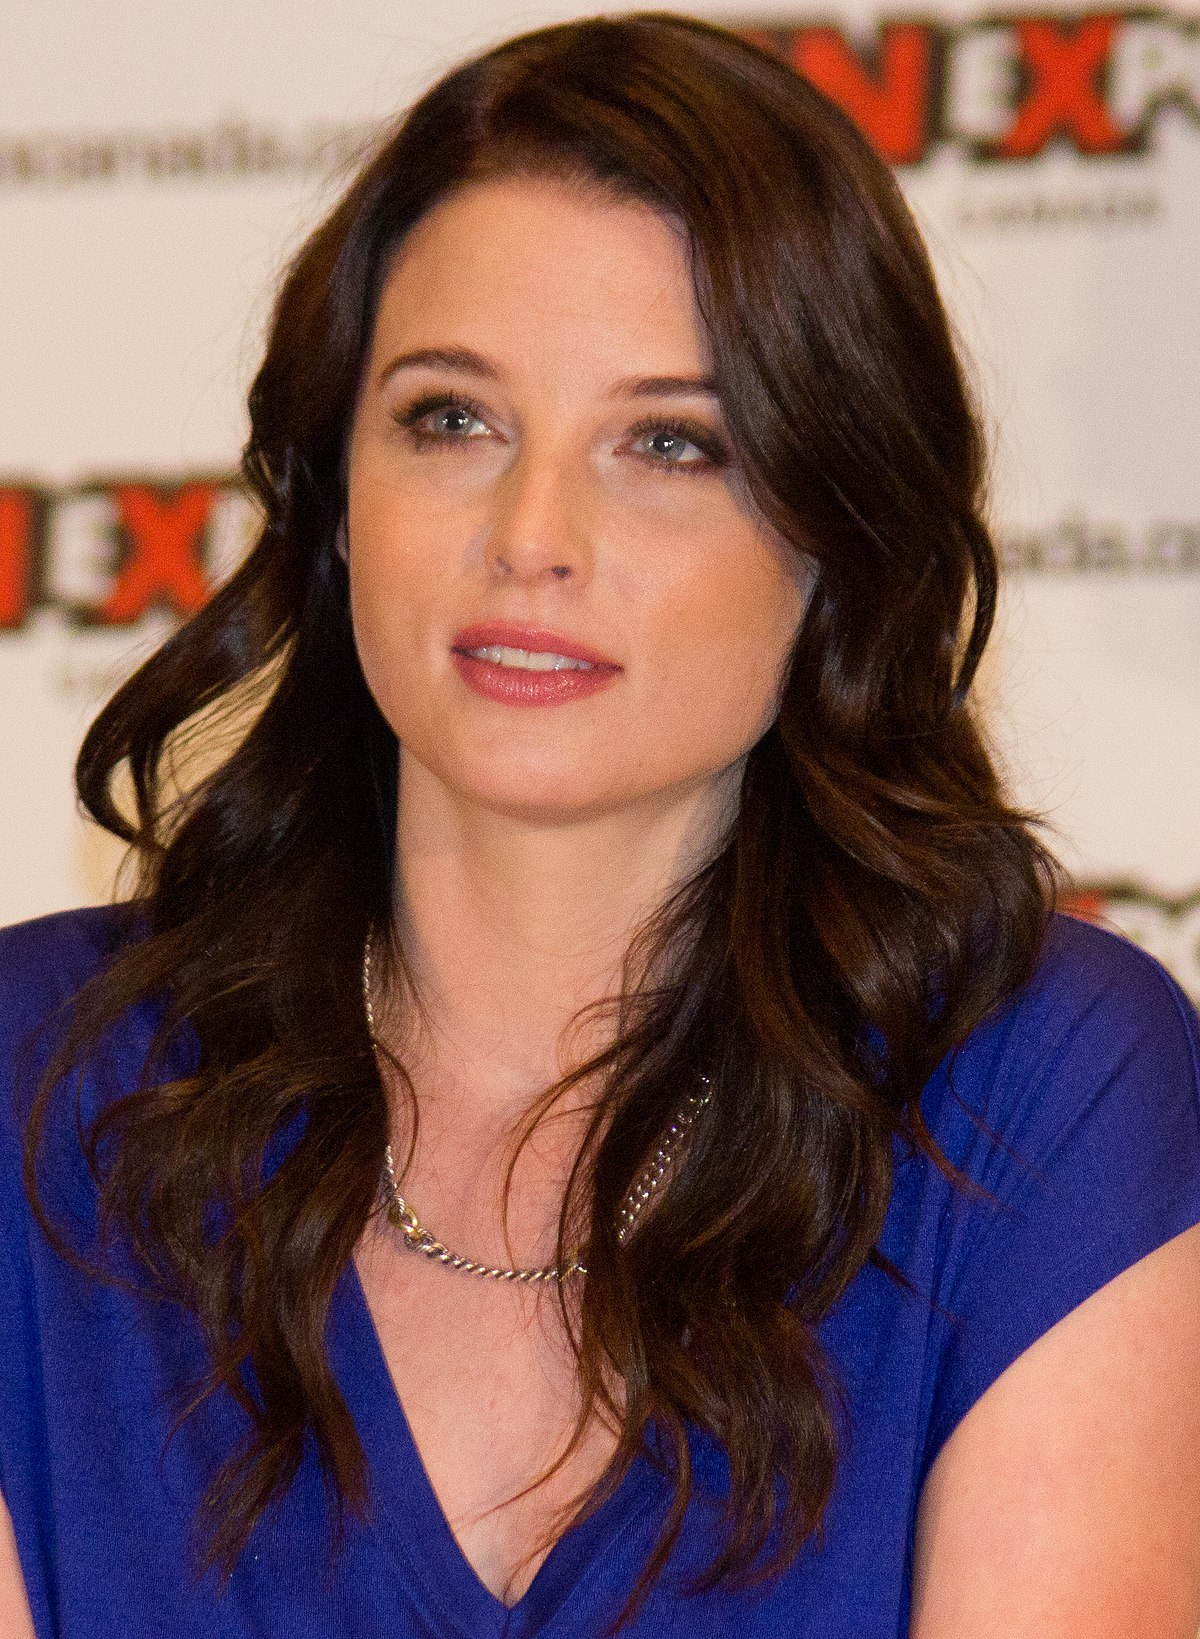 Rachel Nichols born January 8, 1980 (age 38)